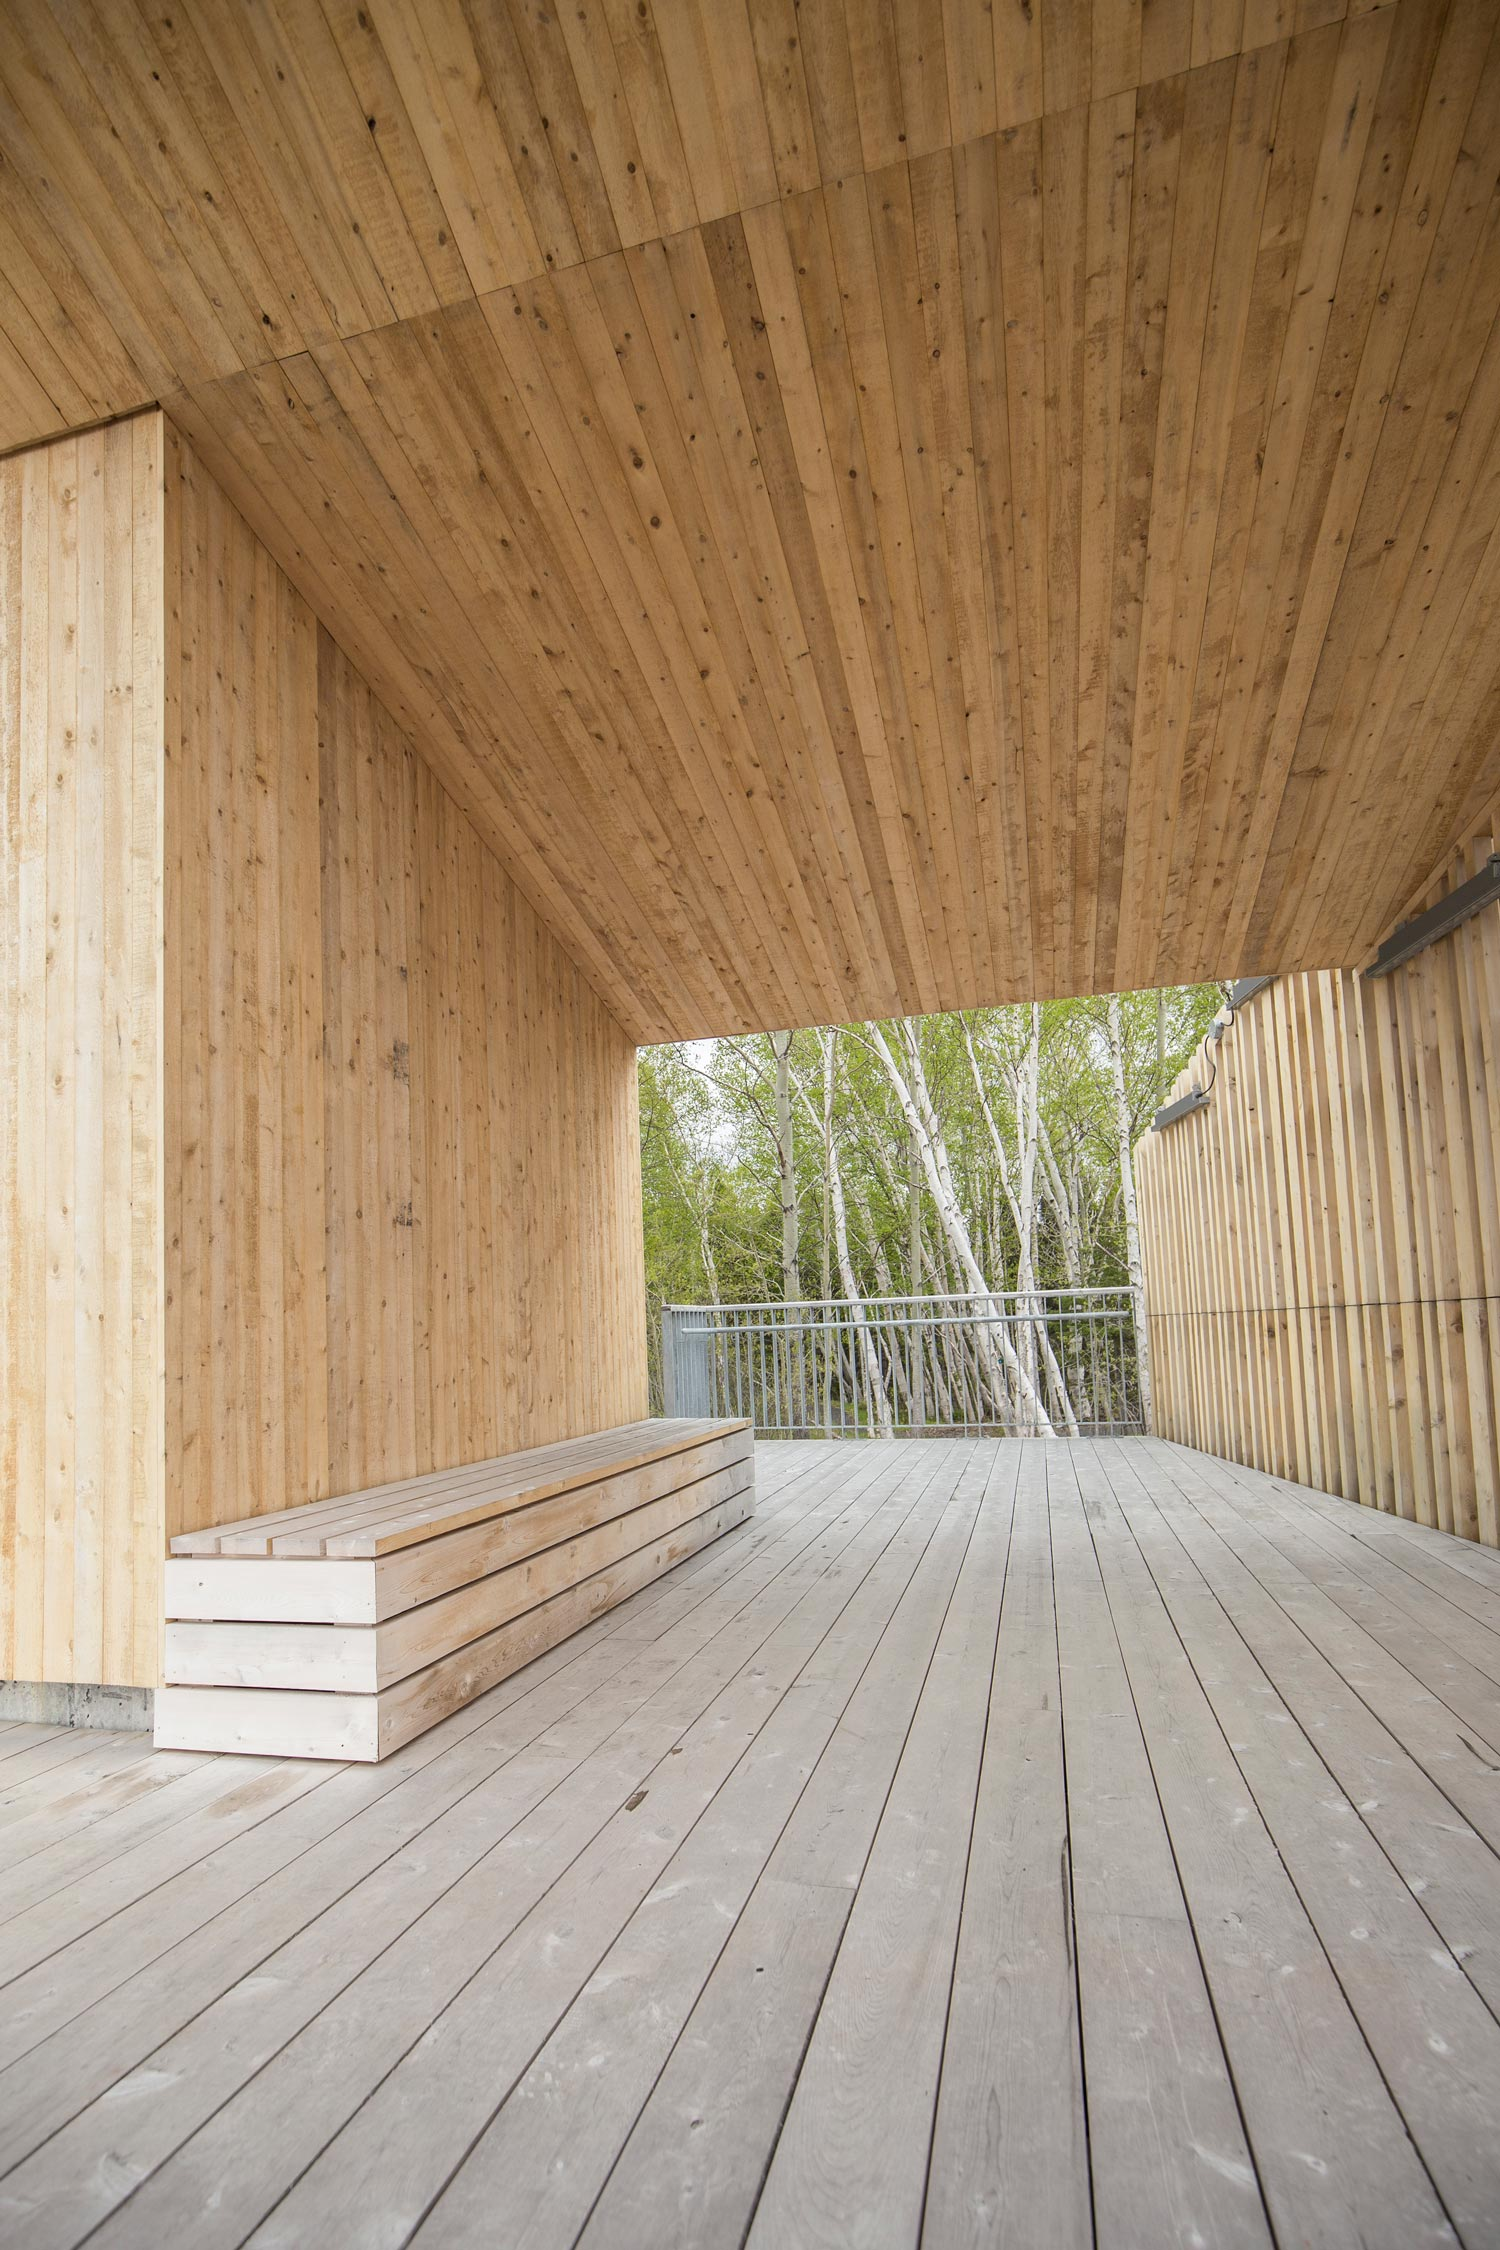 The interior passageways of the pavilion create viewfinders for the landscape, directing visitors to a viewing platform behind the pavilion.